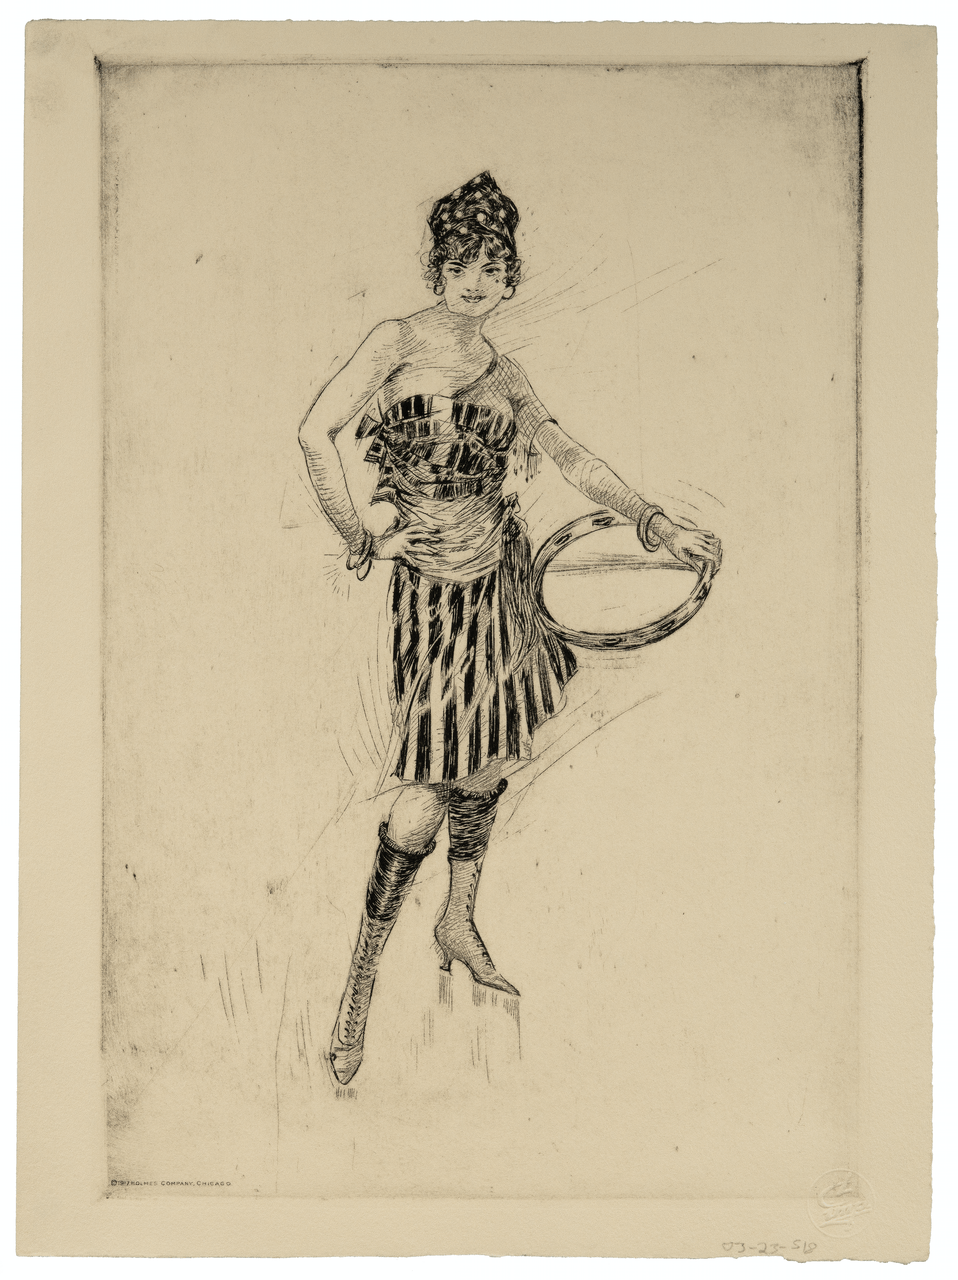 Guy B. Holmes Etching, 1917 Holmes Company Chicago Etching Of A Lady